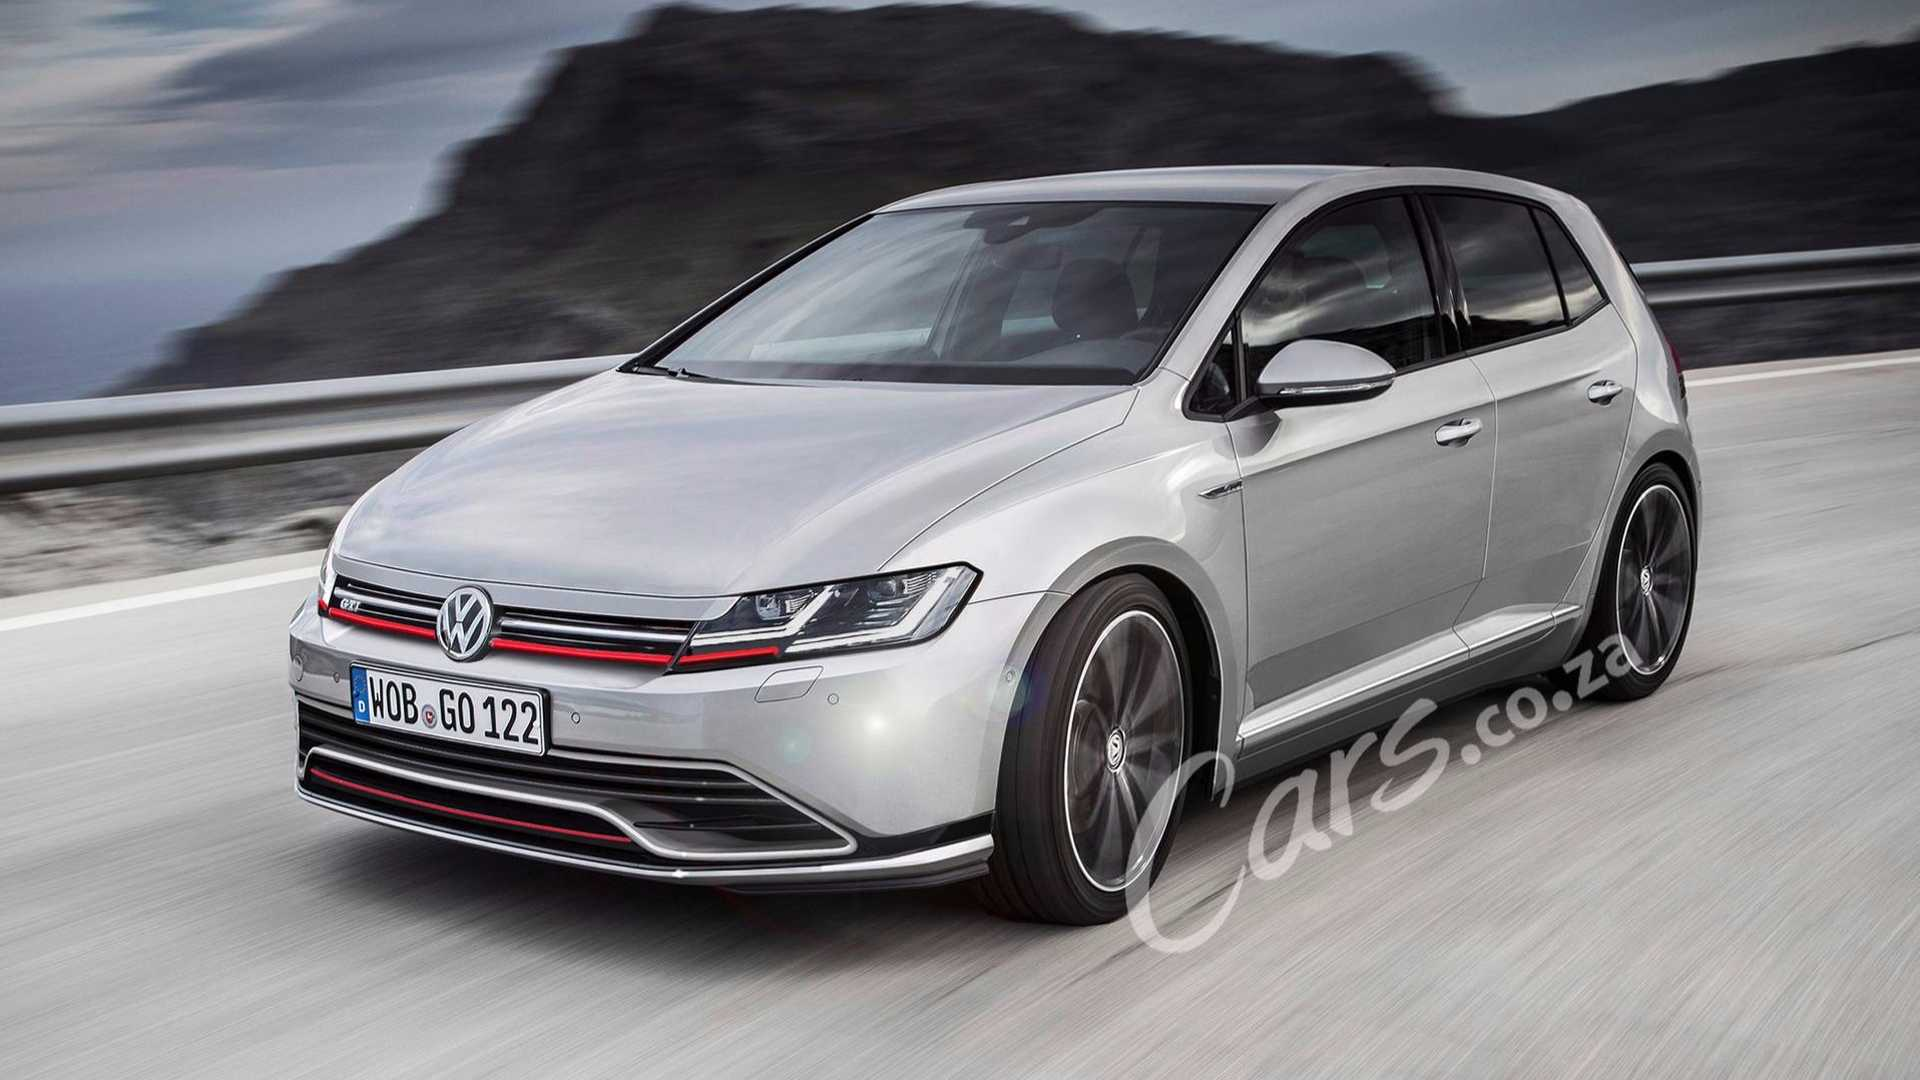 58 All New Volkswagen Golf Gti 2020 Pricing